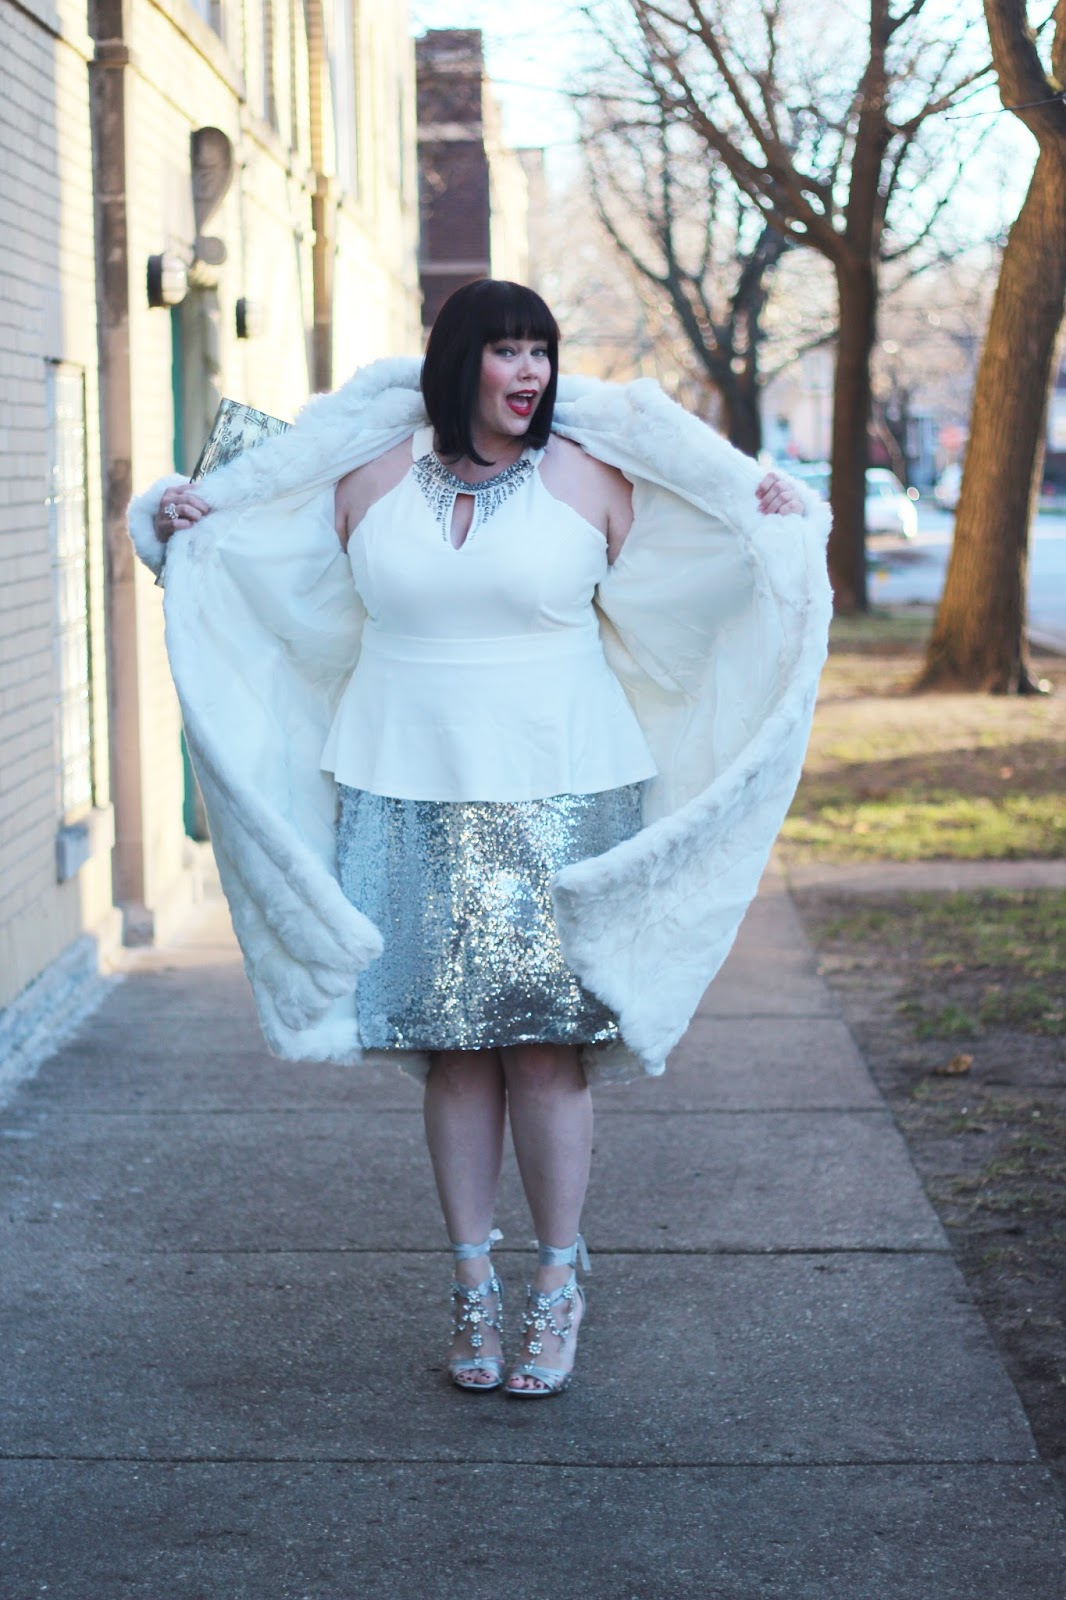 Amber from Style Plus Curves in a White Plus Size Faux Fur Coat, Sequin Skirt and White Peplum Top from Fullbeauty.com